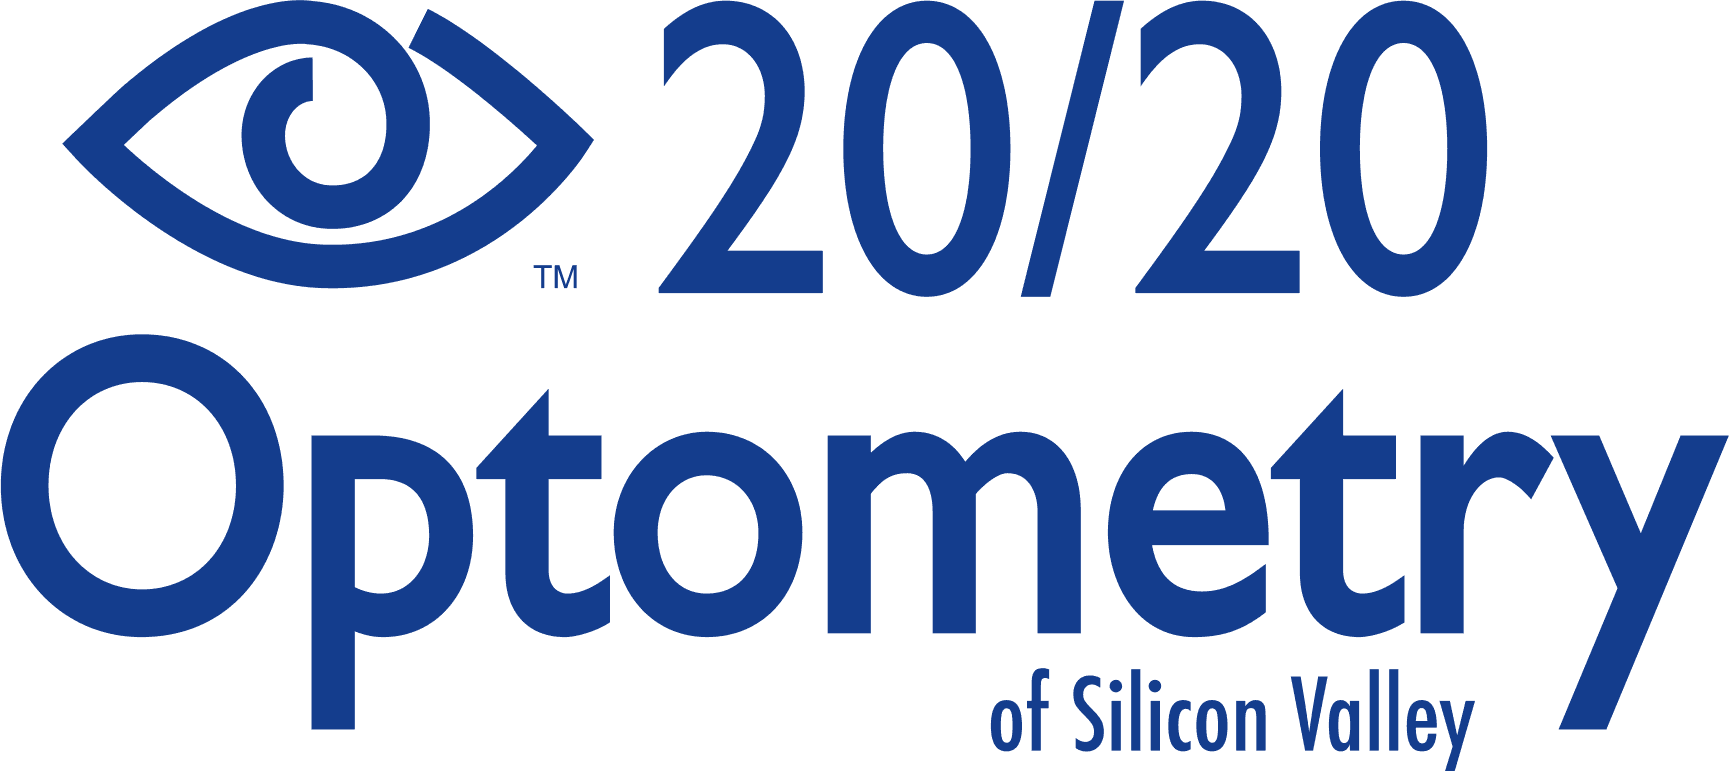 20/20 Optometry of Silicon Valley logo